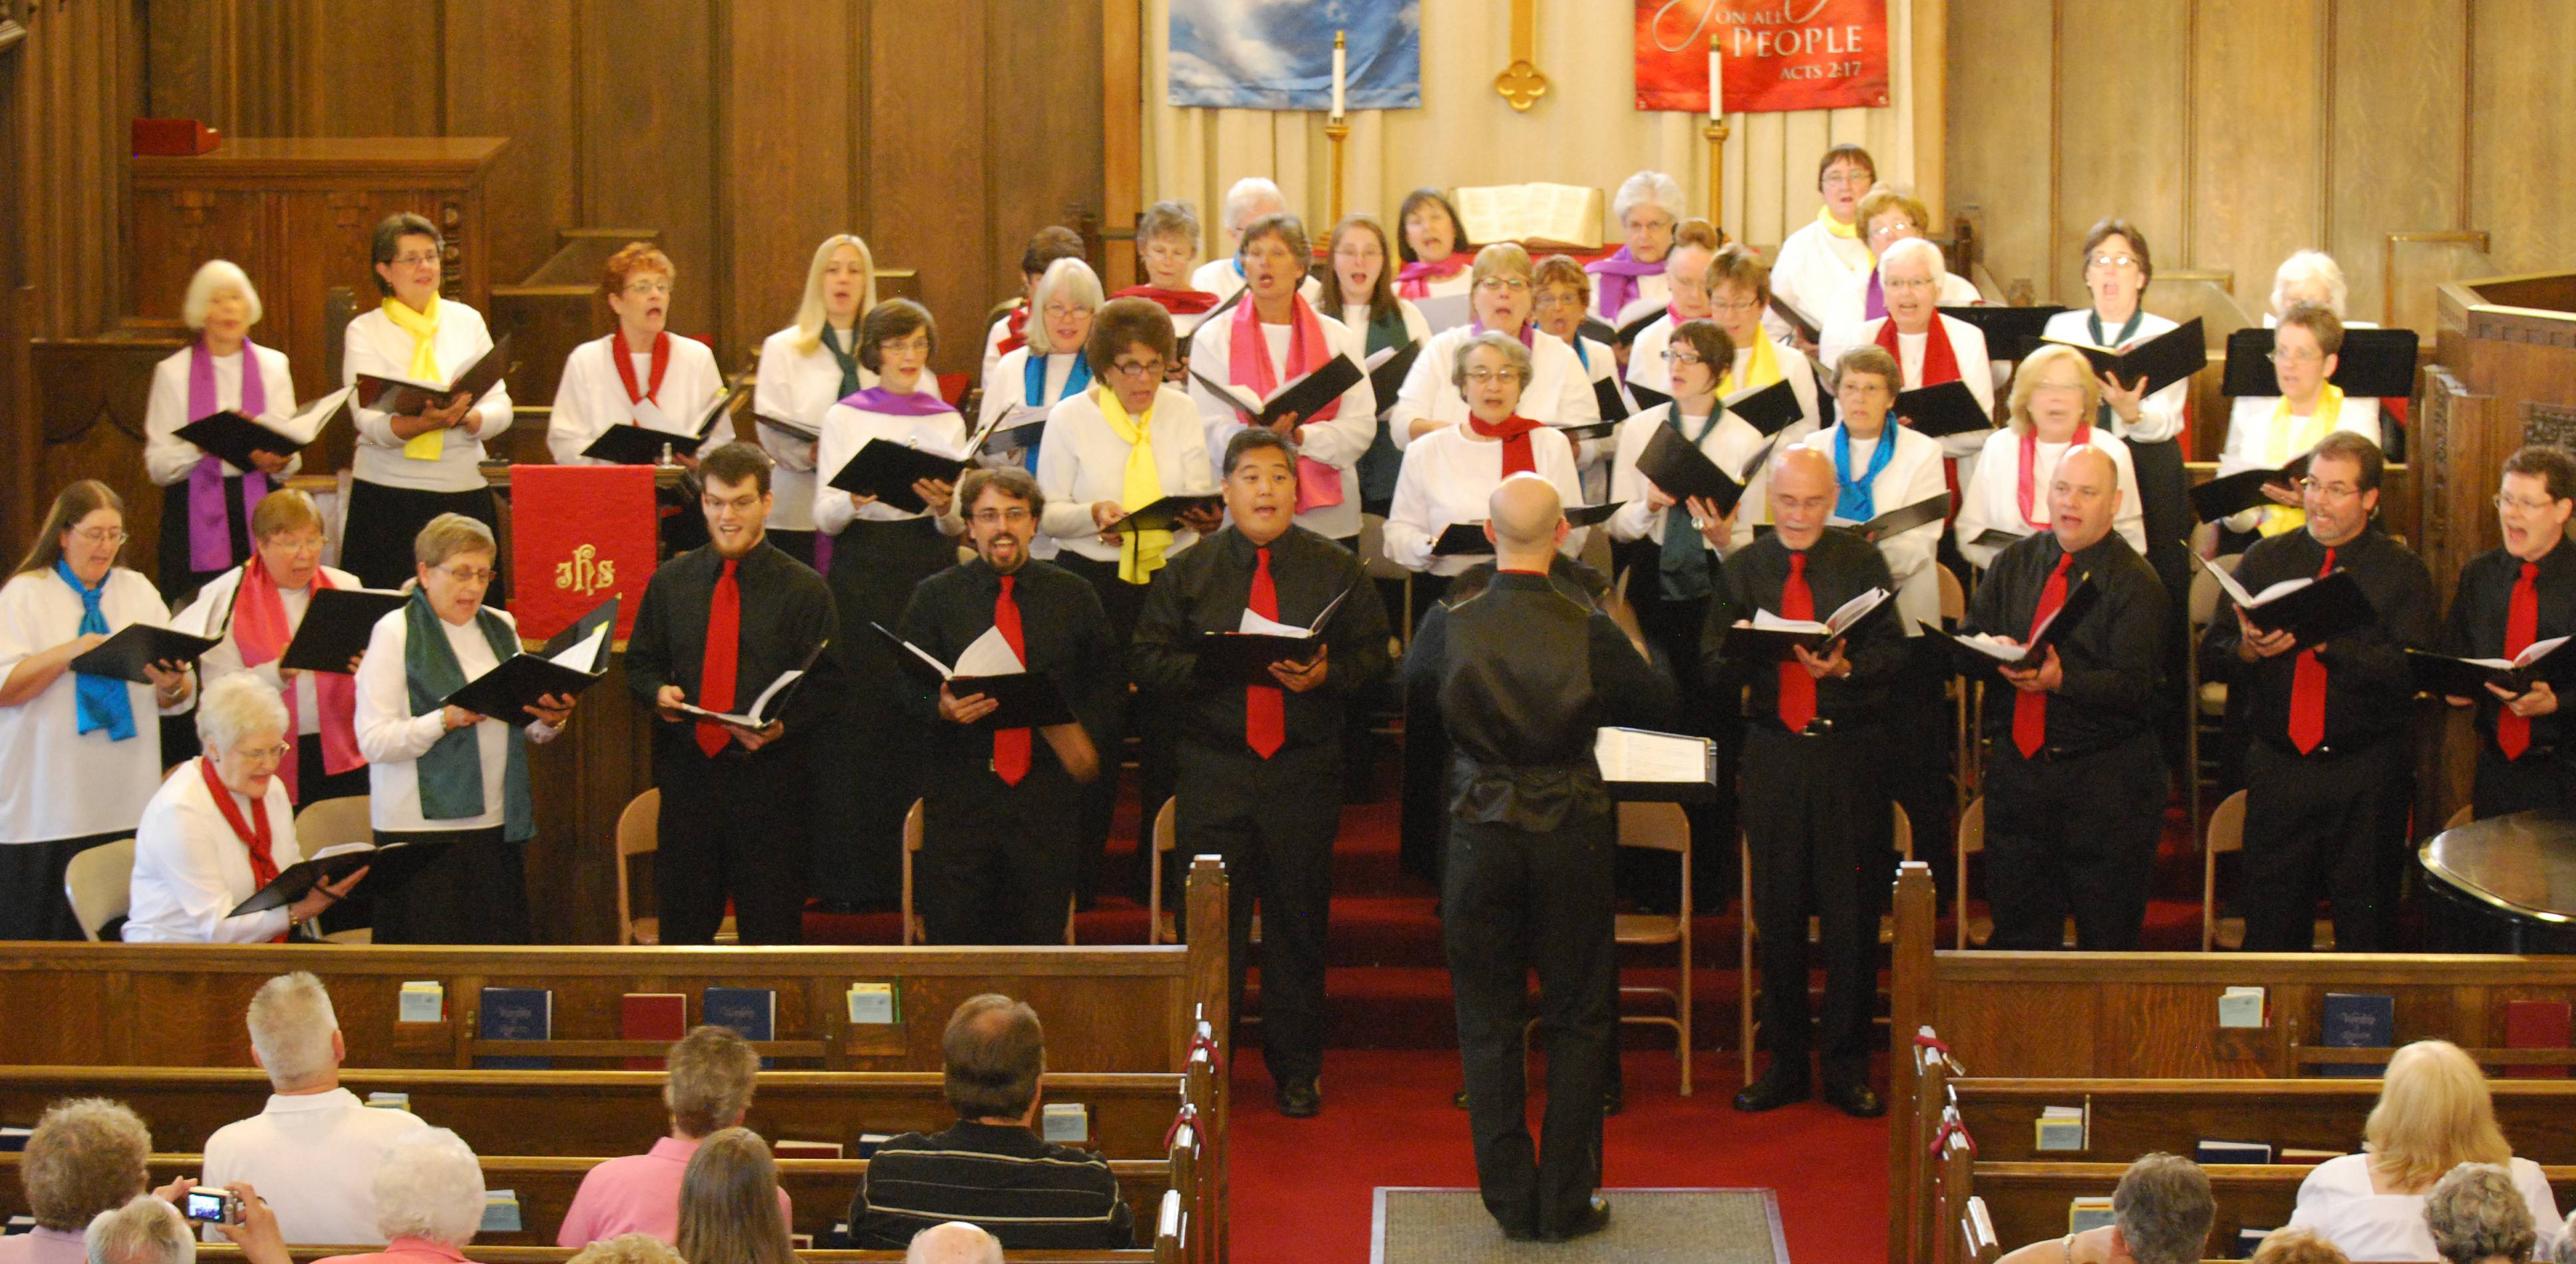 The Northwest Choral Society presents final concert of the 2011-12 season.